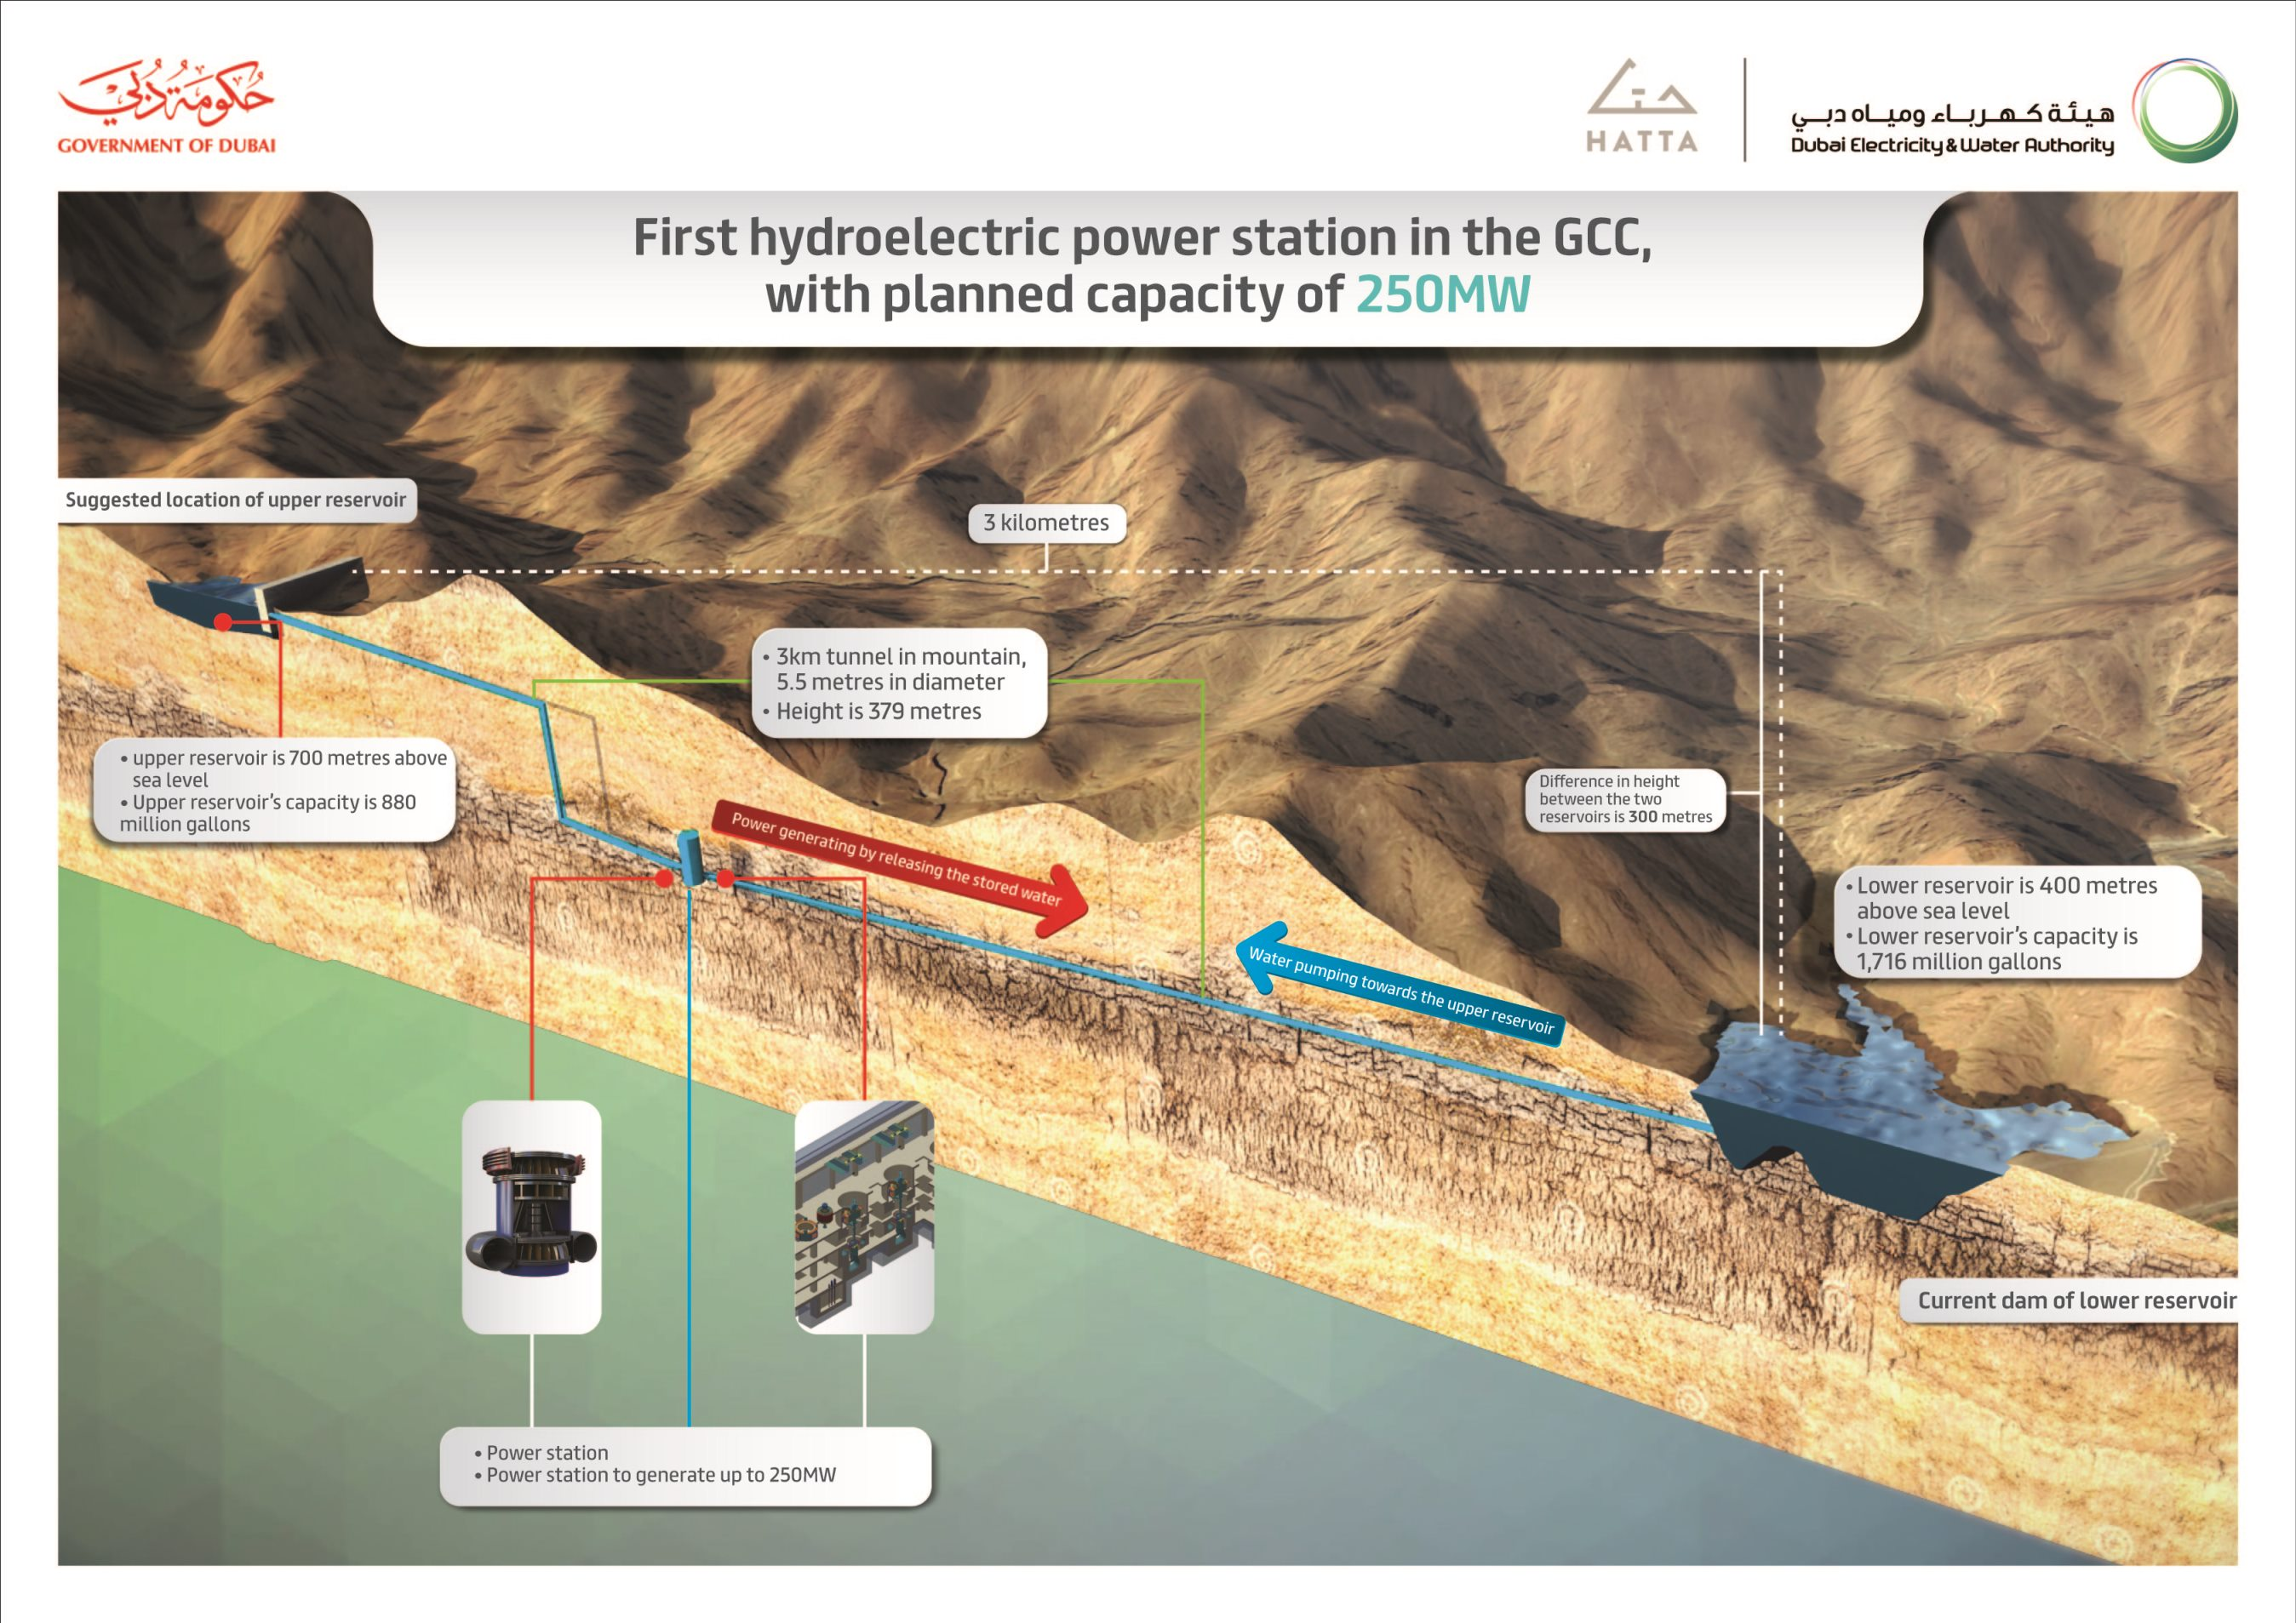 dewa makes progress in engineering studies for hatta hydroelectric plant